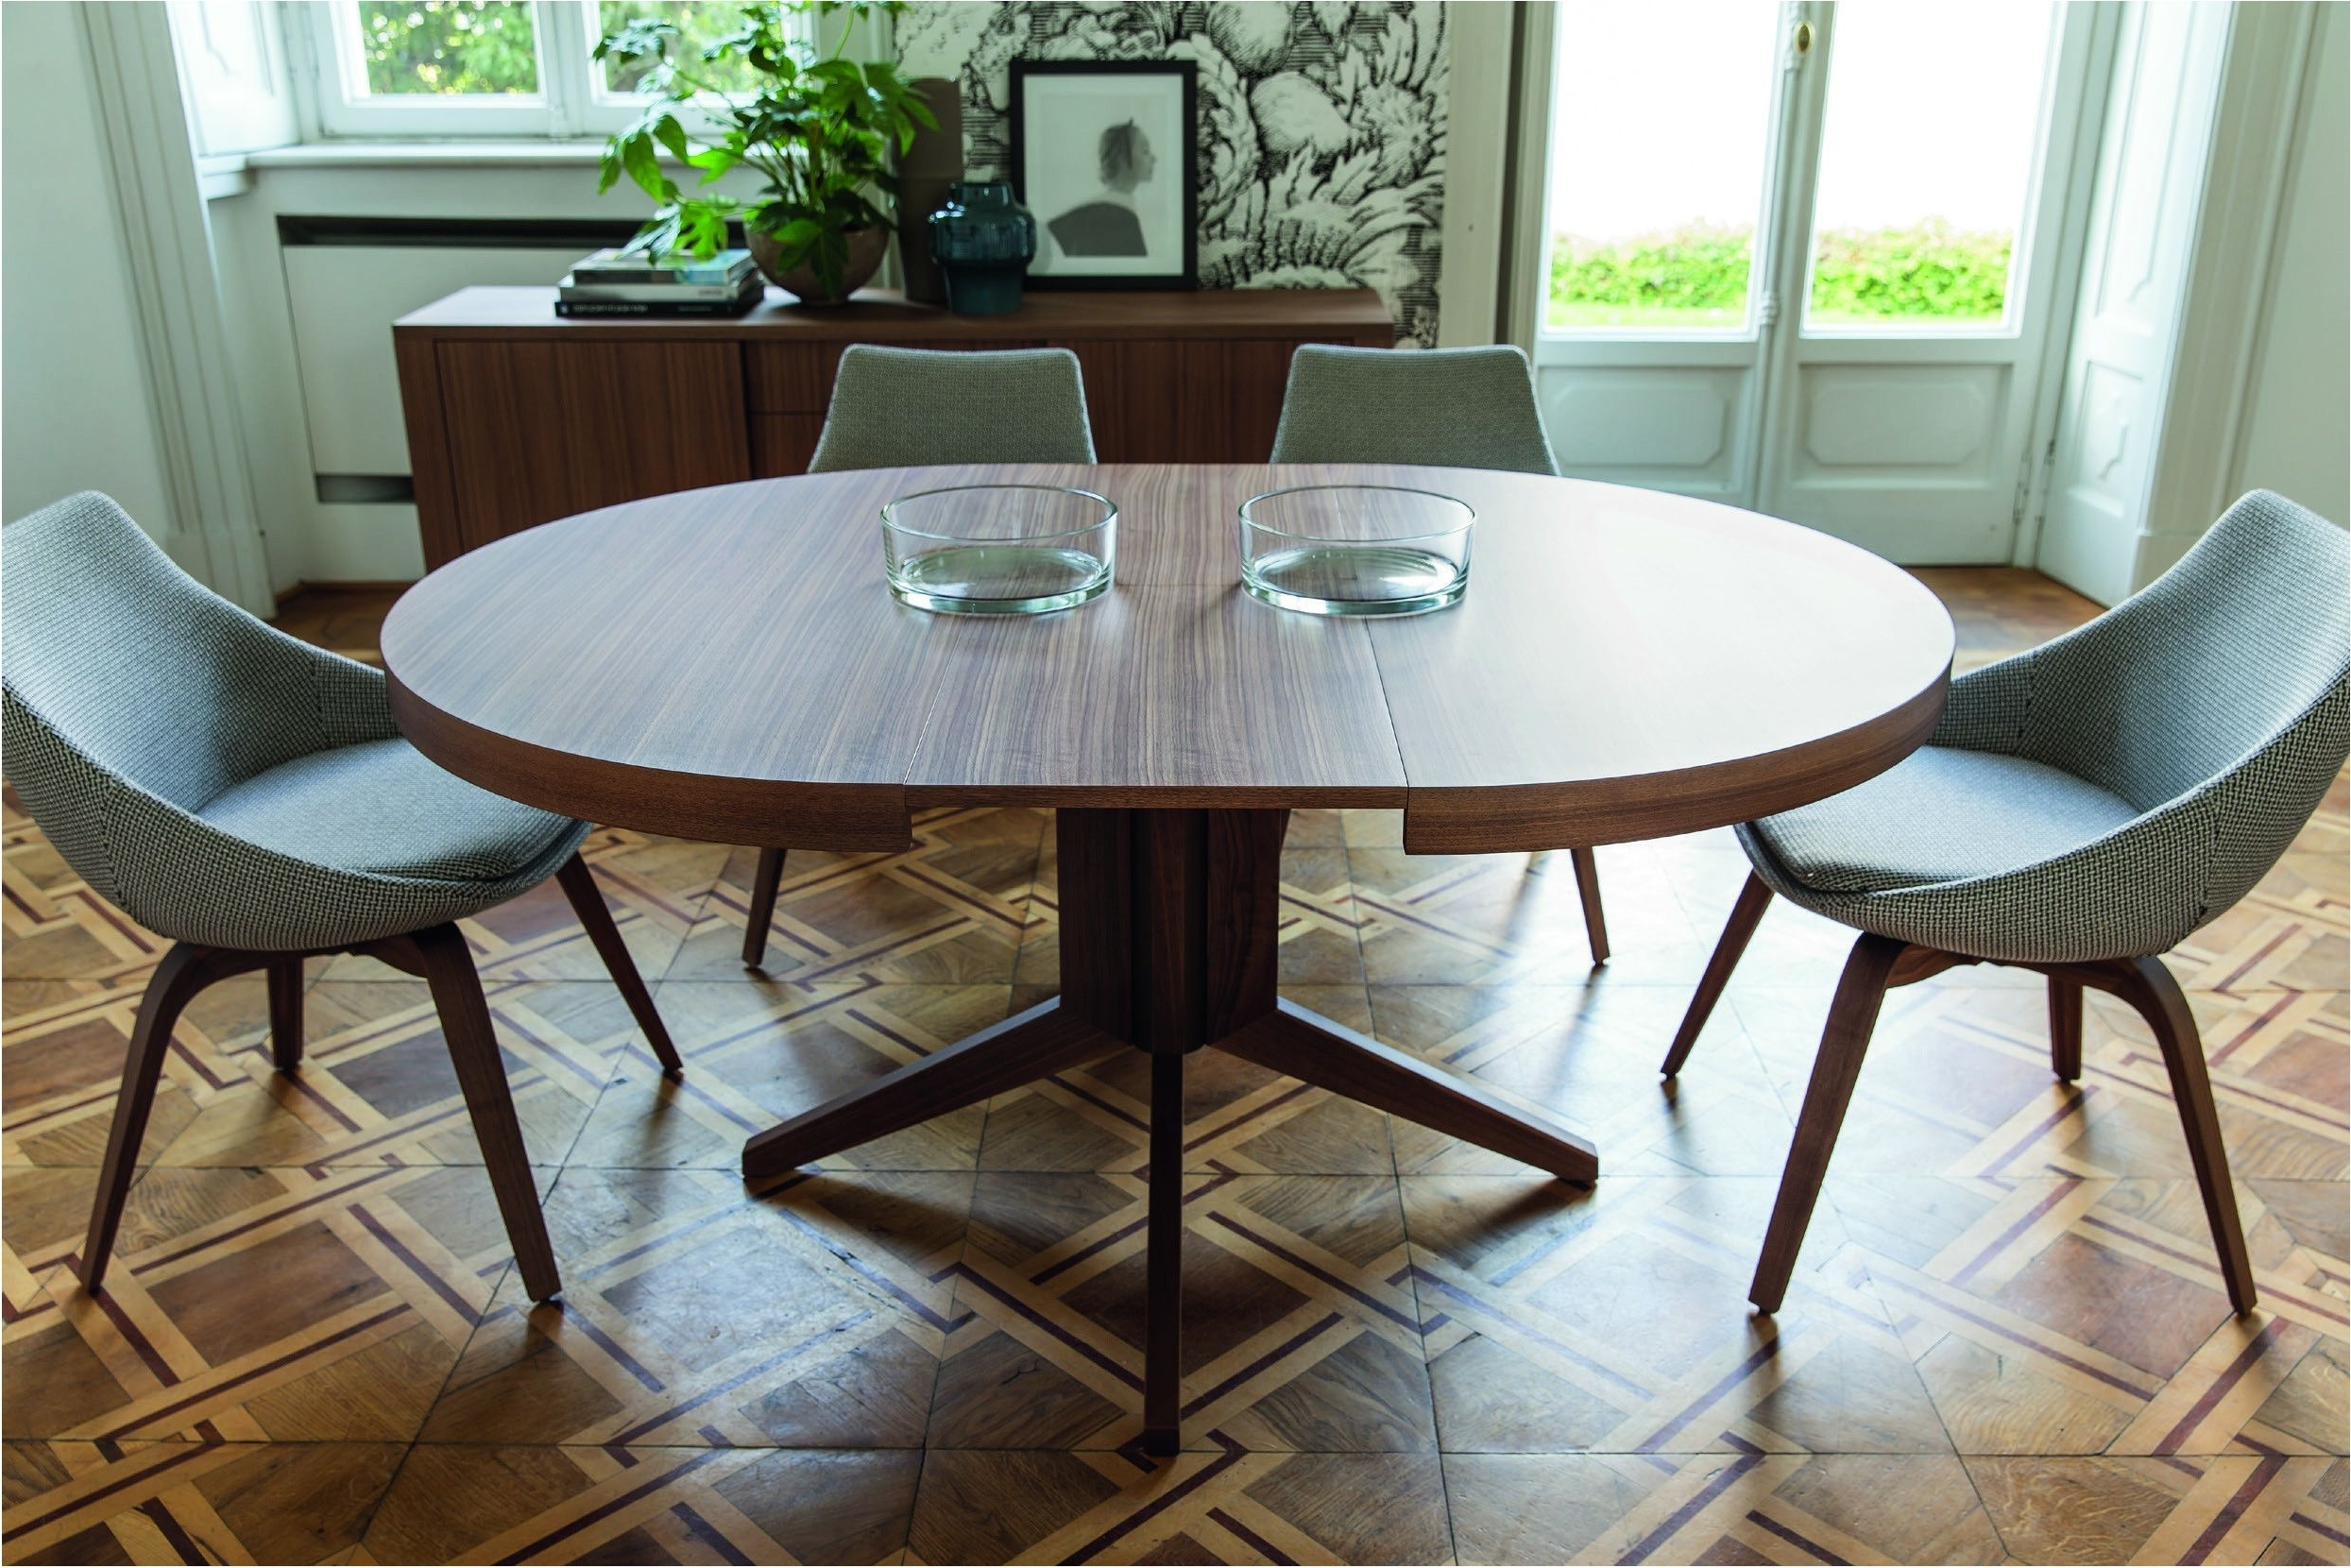 2018 Oval Dining Tables For Sale Throughout Fantastic Top 52 Perfect Modern Dining Chairs Oak Table Glass (View 24 of 25)